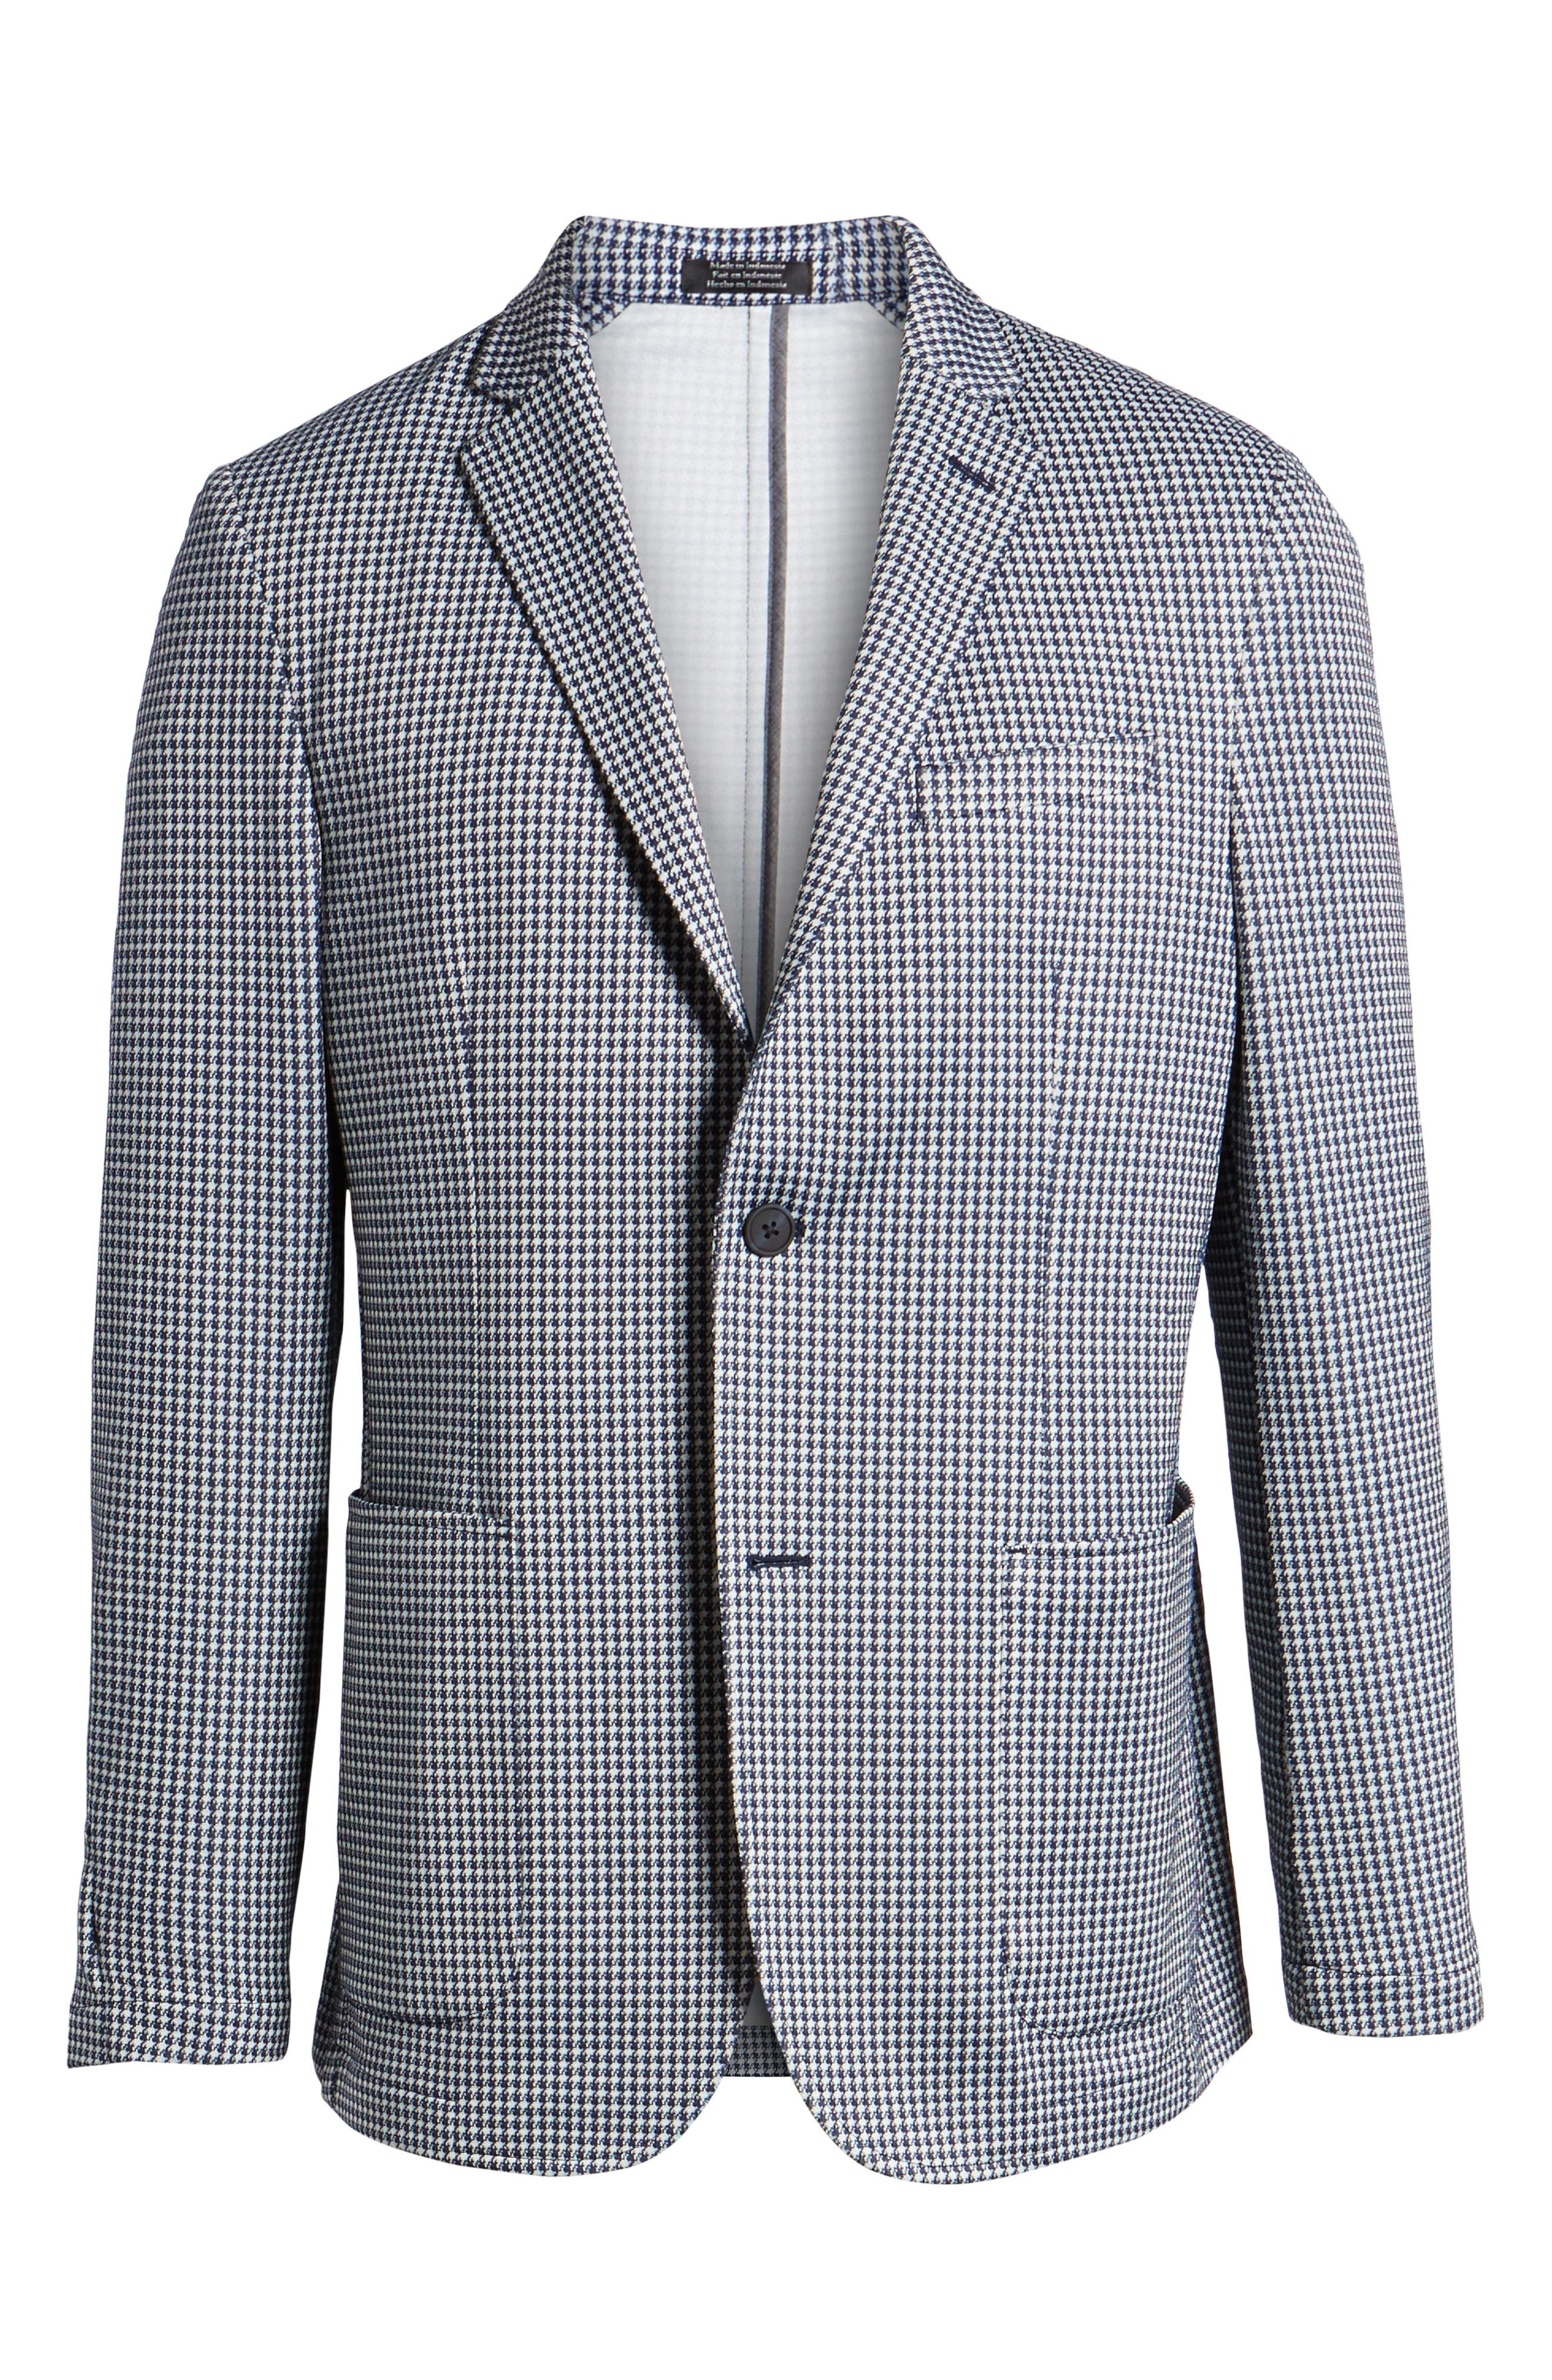 Slim Fit Stretch Houndstooth Sport Coat,                             Alternate thumbnail 5, color,                             410